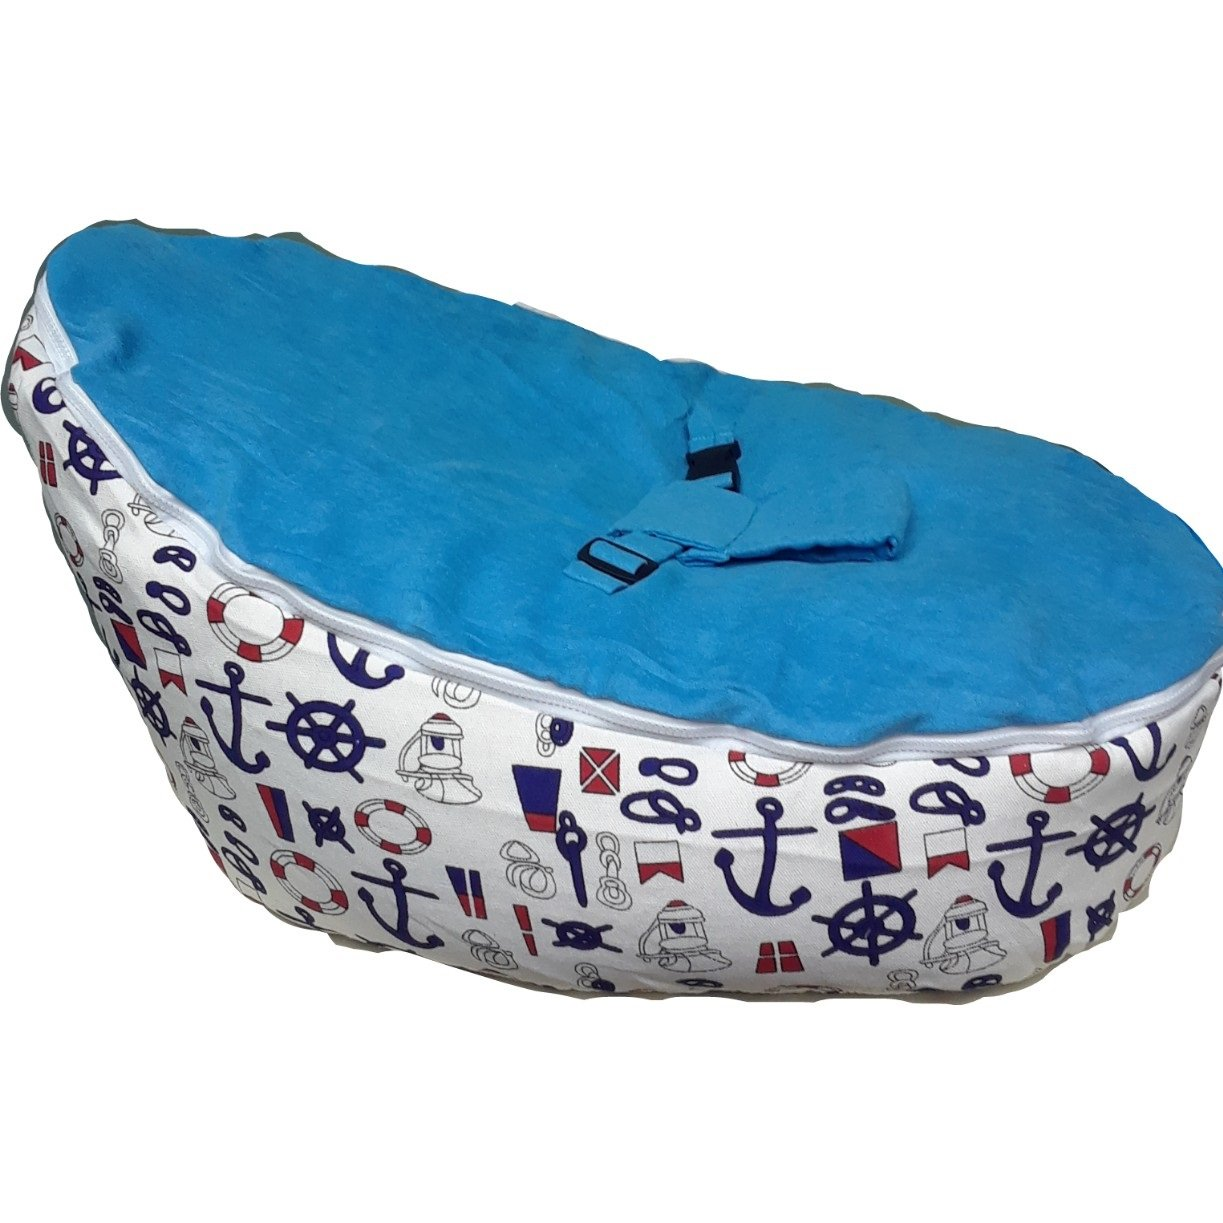 BABYBOOPER BEANBAGS A SOFT & COZY SITTING AND NAPPING COZY CHAIR FOR BABIES (BOOPER SEA SAILOR) Q CITY OUTLETS